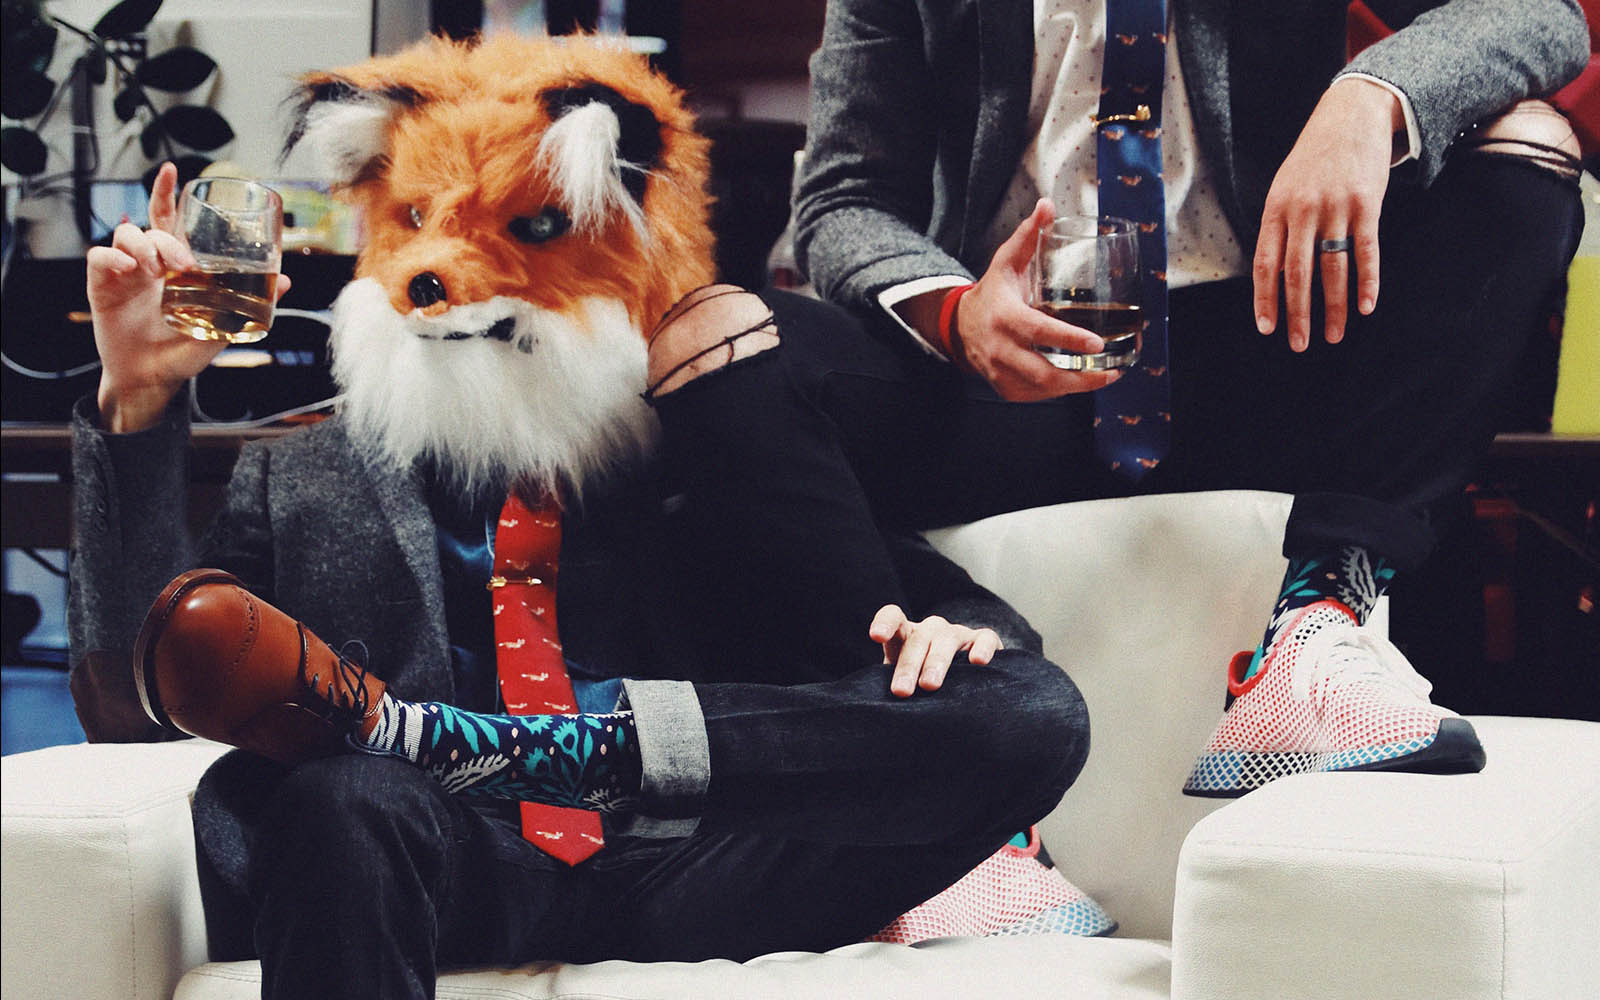 man in suit wearing fox mask